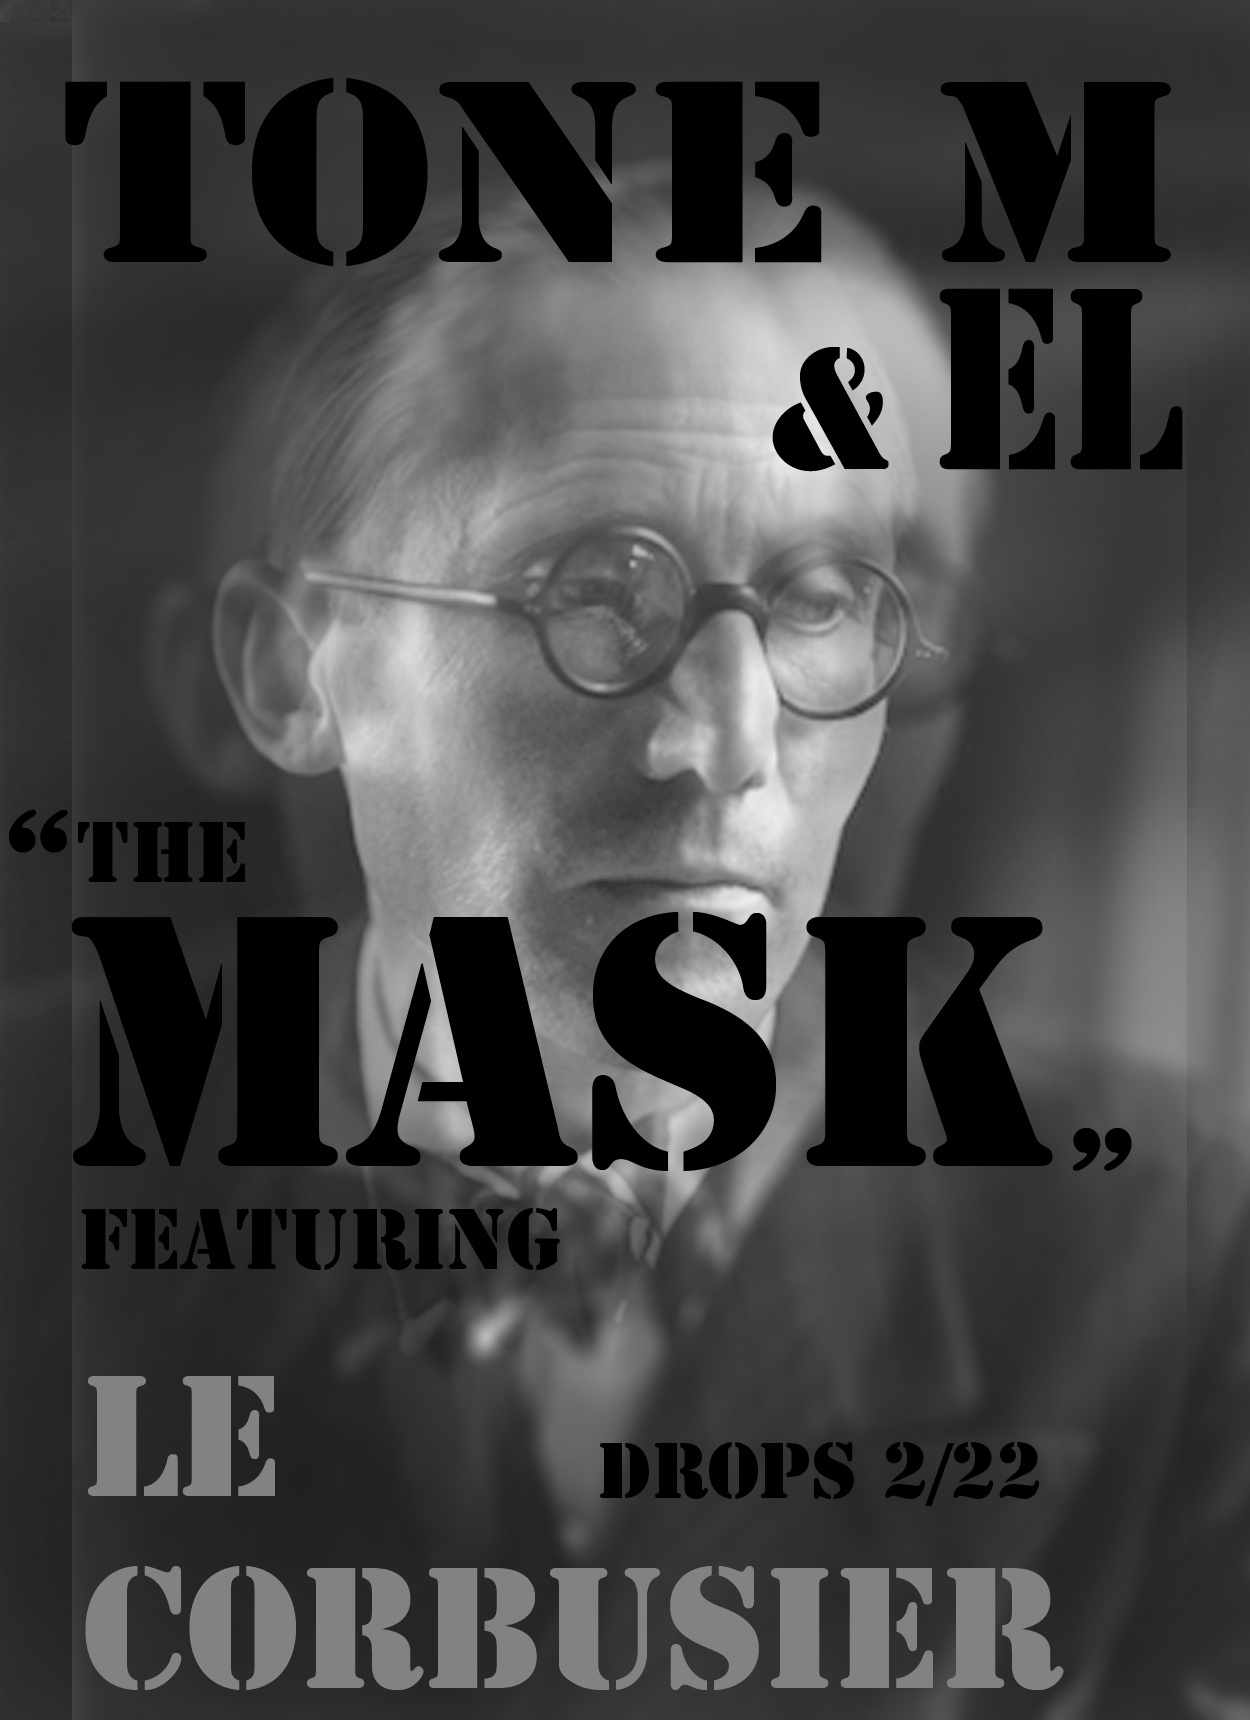 "themaskproject: The first single ""The MASK"" ft. Le Corbusier by T0ne M & EL scheduled to drop Feb. 22nd. Architecture, Graphic Design, & Hip-Hop music at it's finest! Putting that work in. #THEMASK coming soon #FollowYOURCREED"